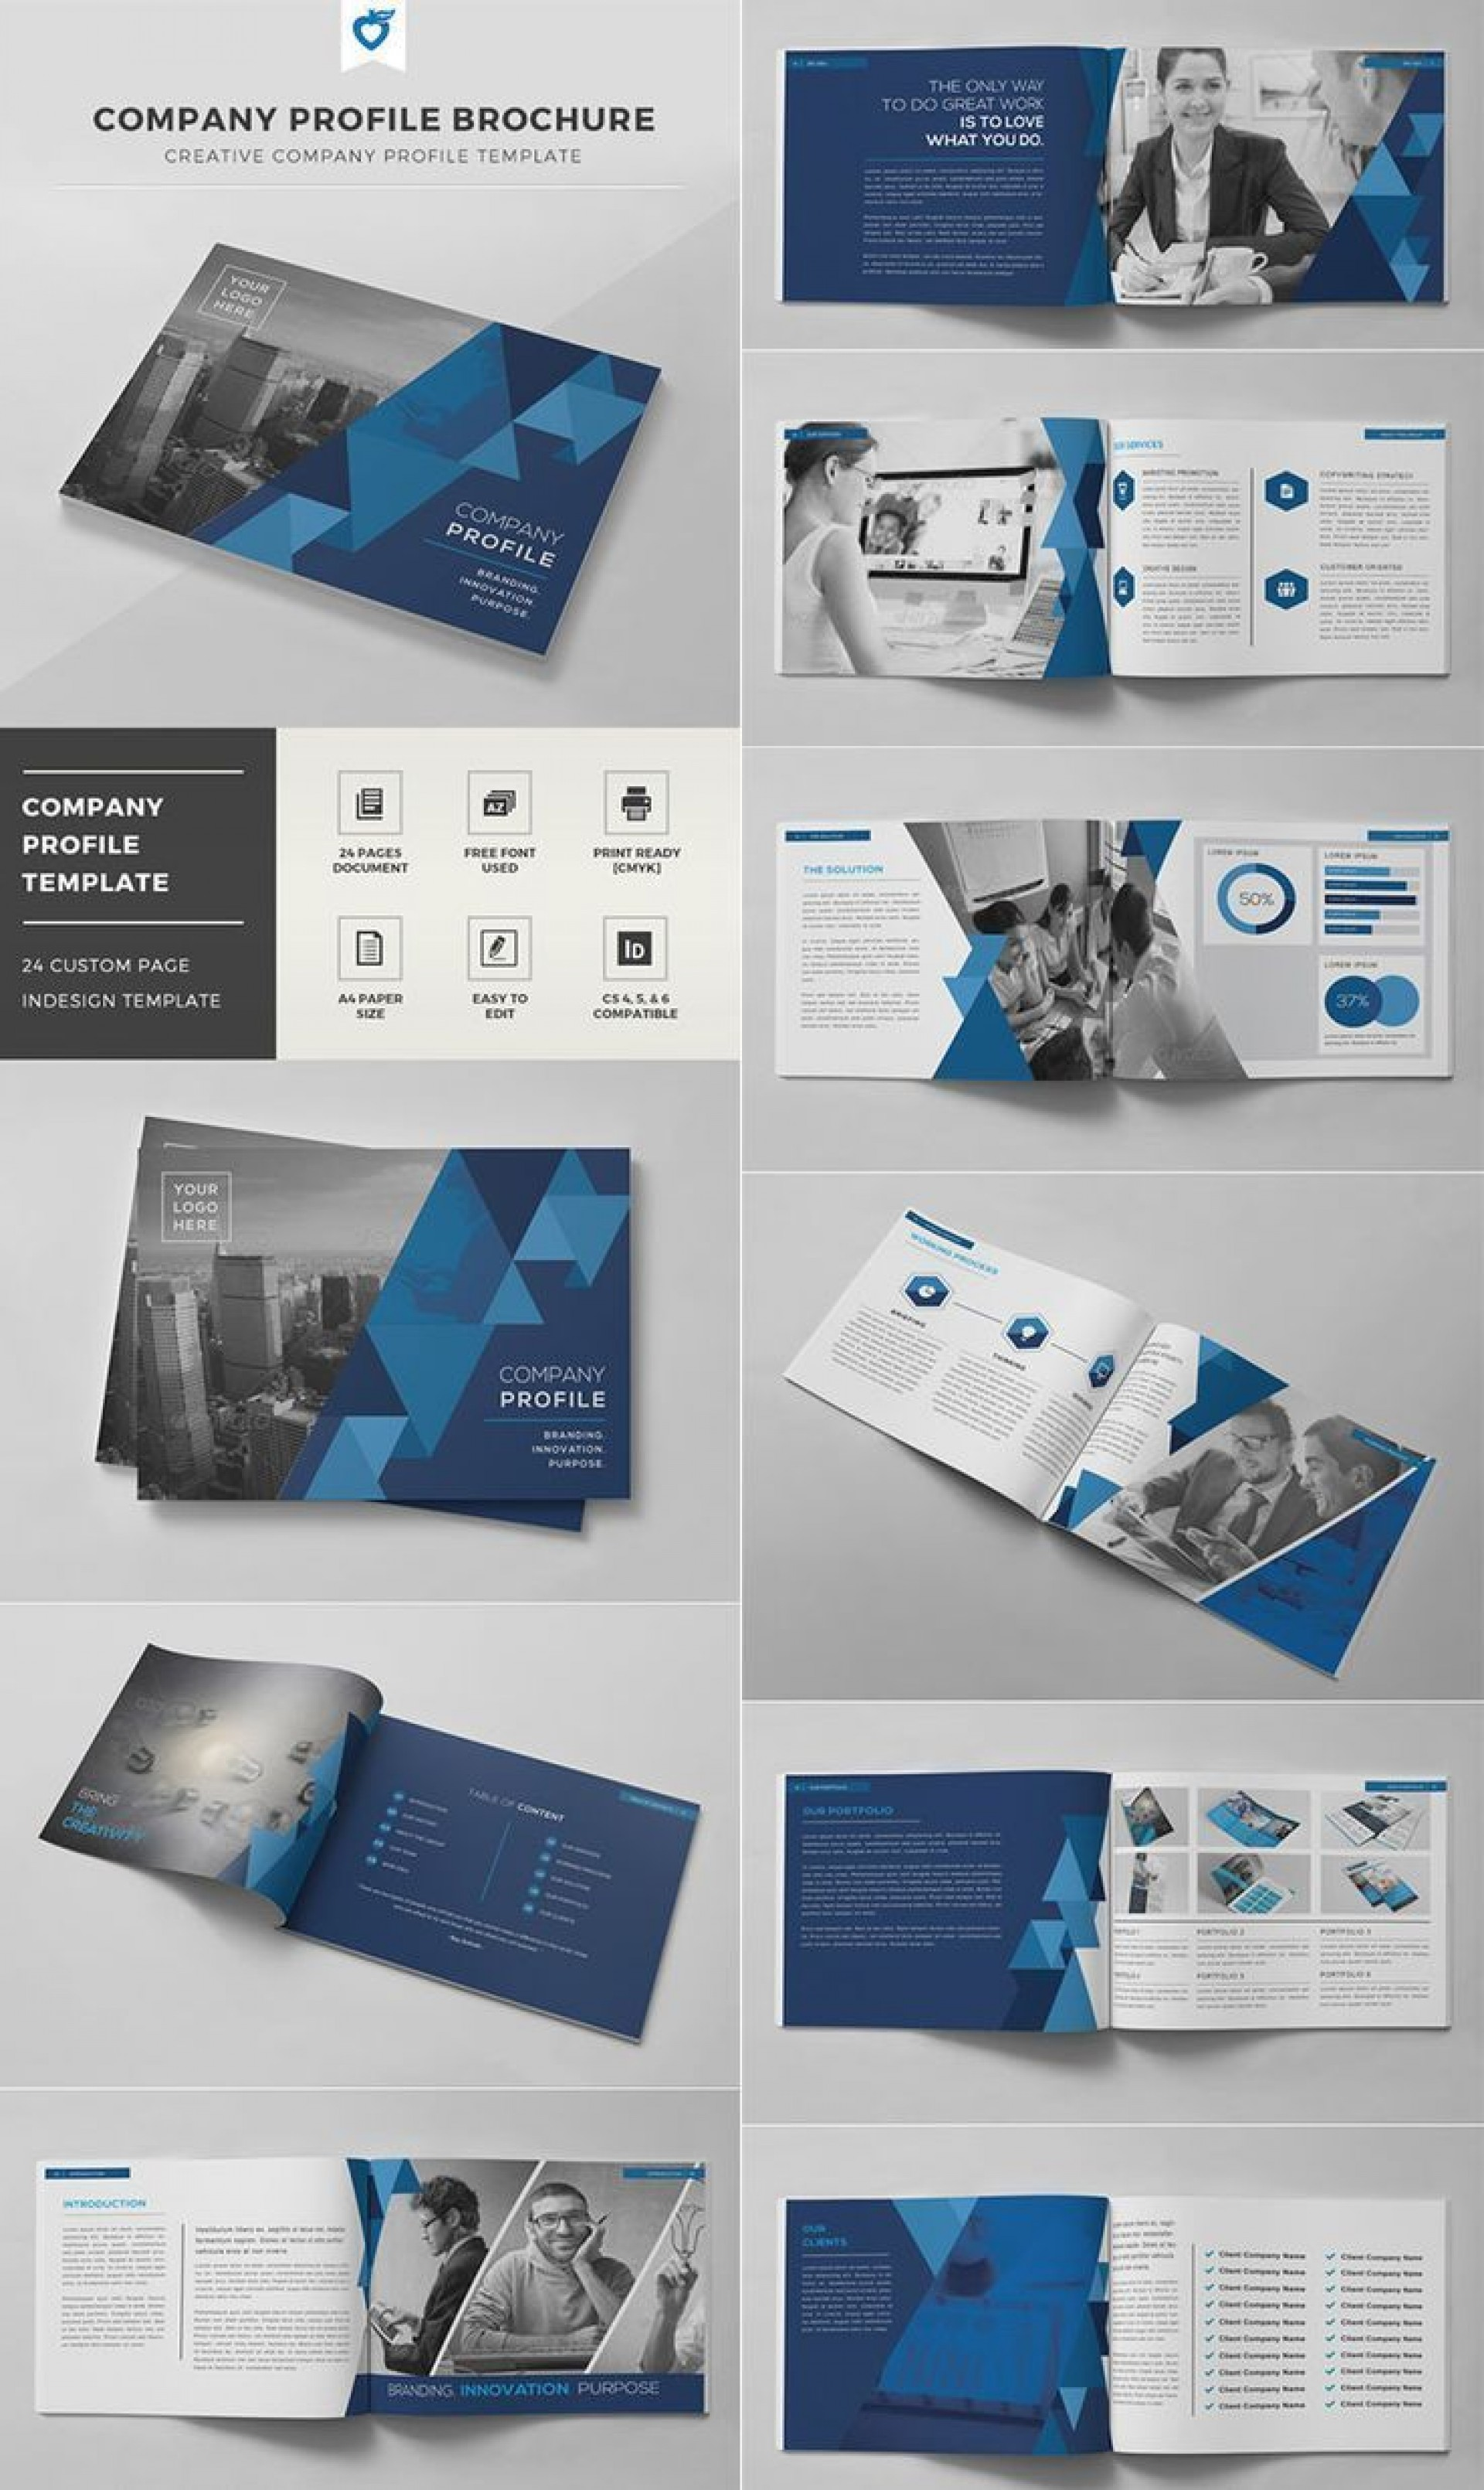 003 Astounding Busines Brochure Design Template Free Download Inspiration 1920